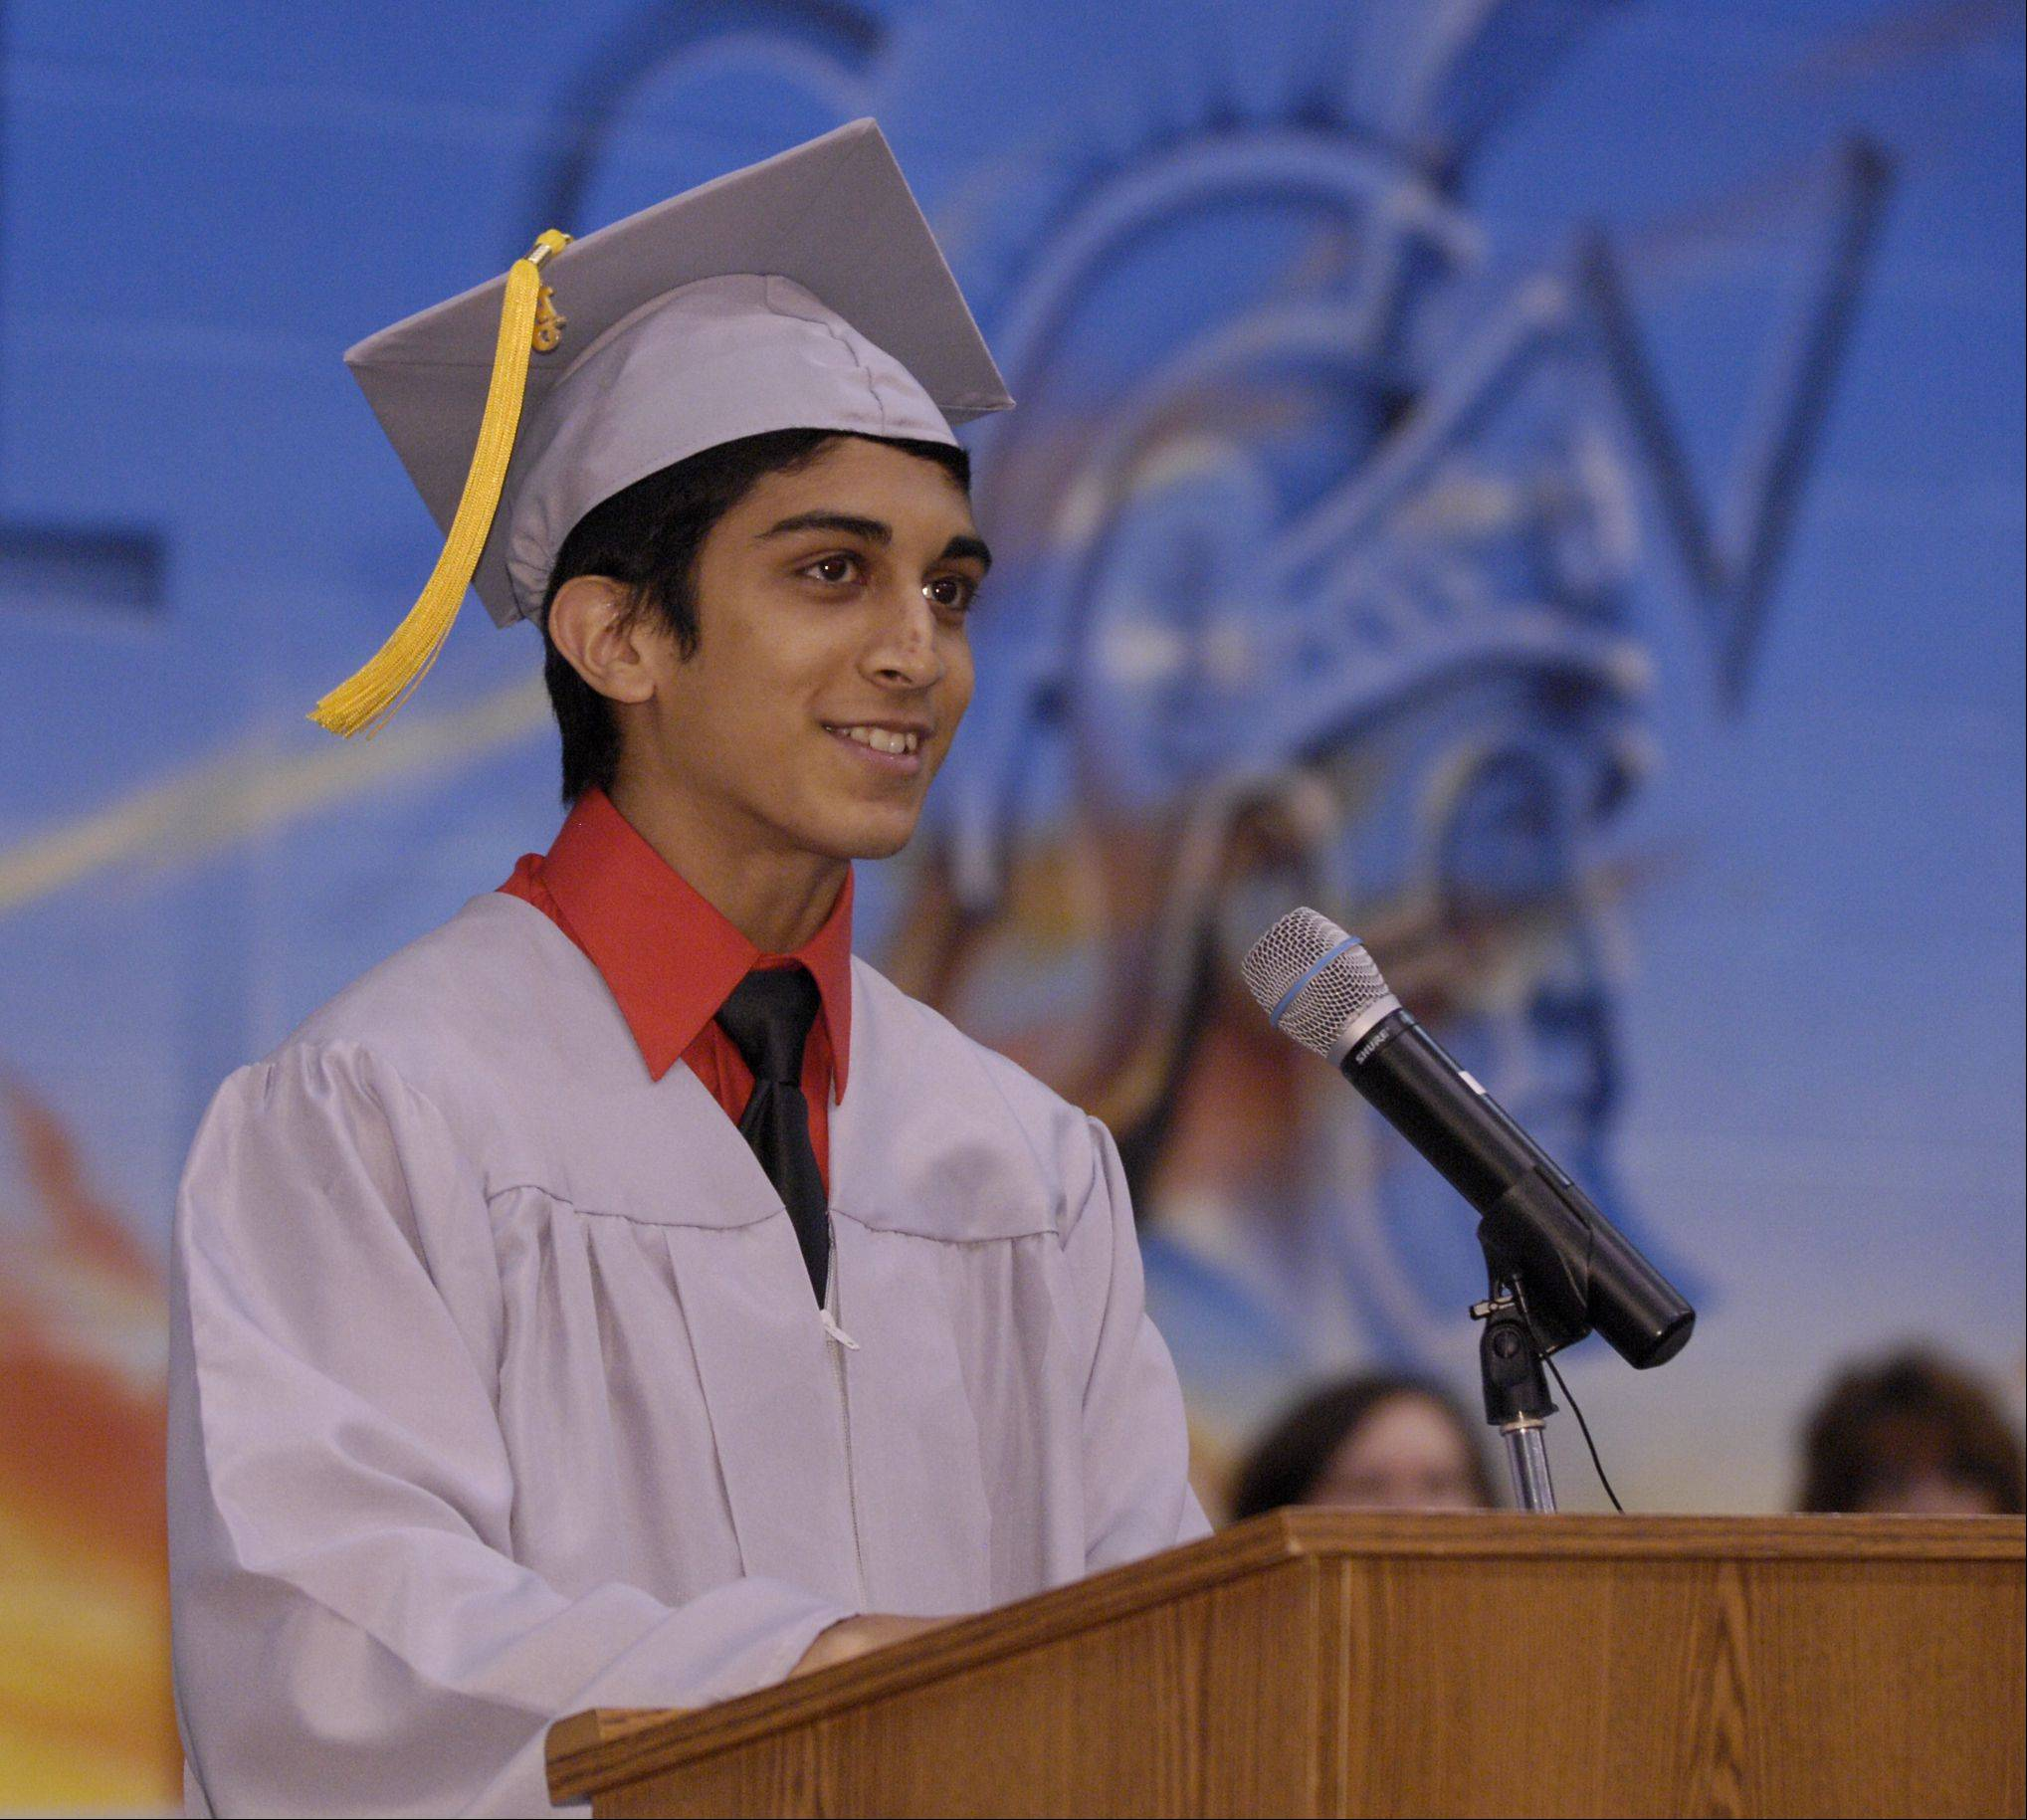 IMuzammil Ali speaks during the Willowbrook High School graduation on Sunday, June 9 at the school.